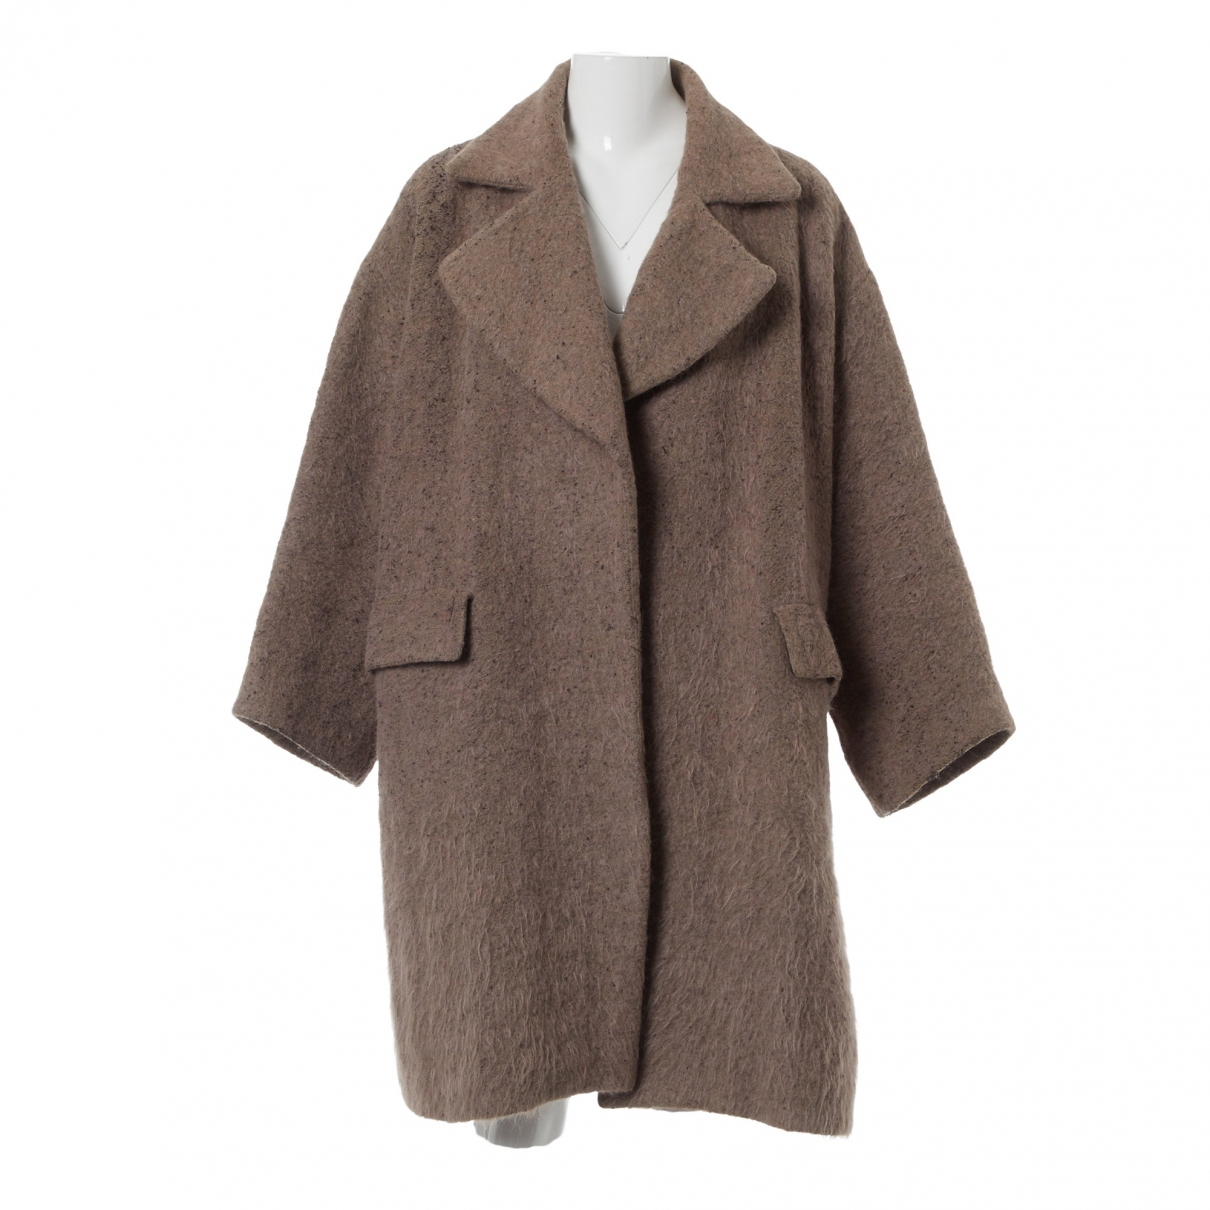 Dries Van Noten \N Beige Wool coat for Women M International